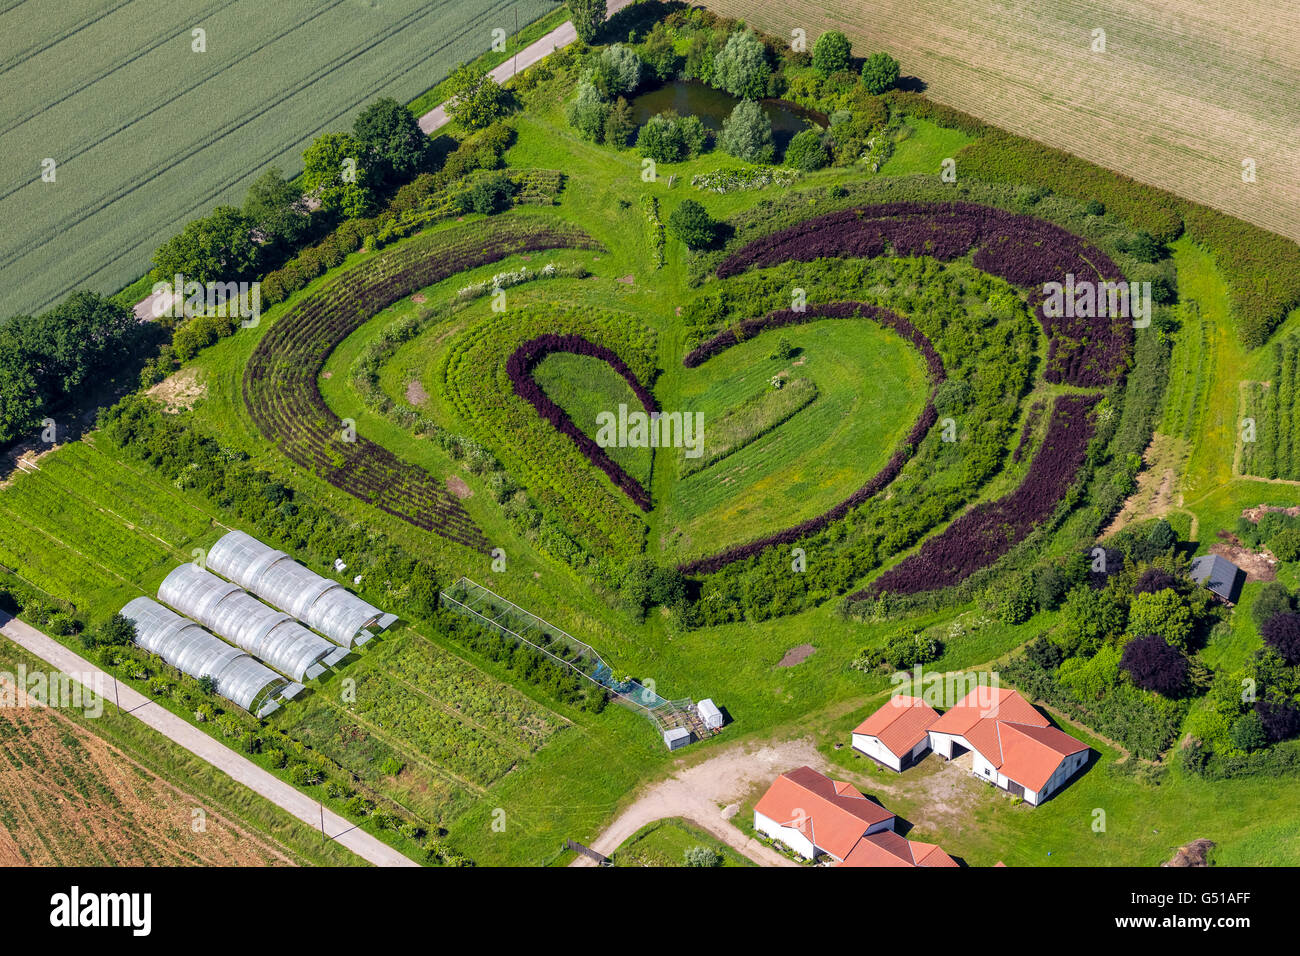 Aerial view, Heart, horticultural company in Waltrop, tree and bush school in the form of a heart, heart shape, Stock Photo